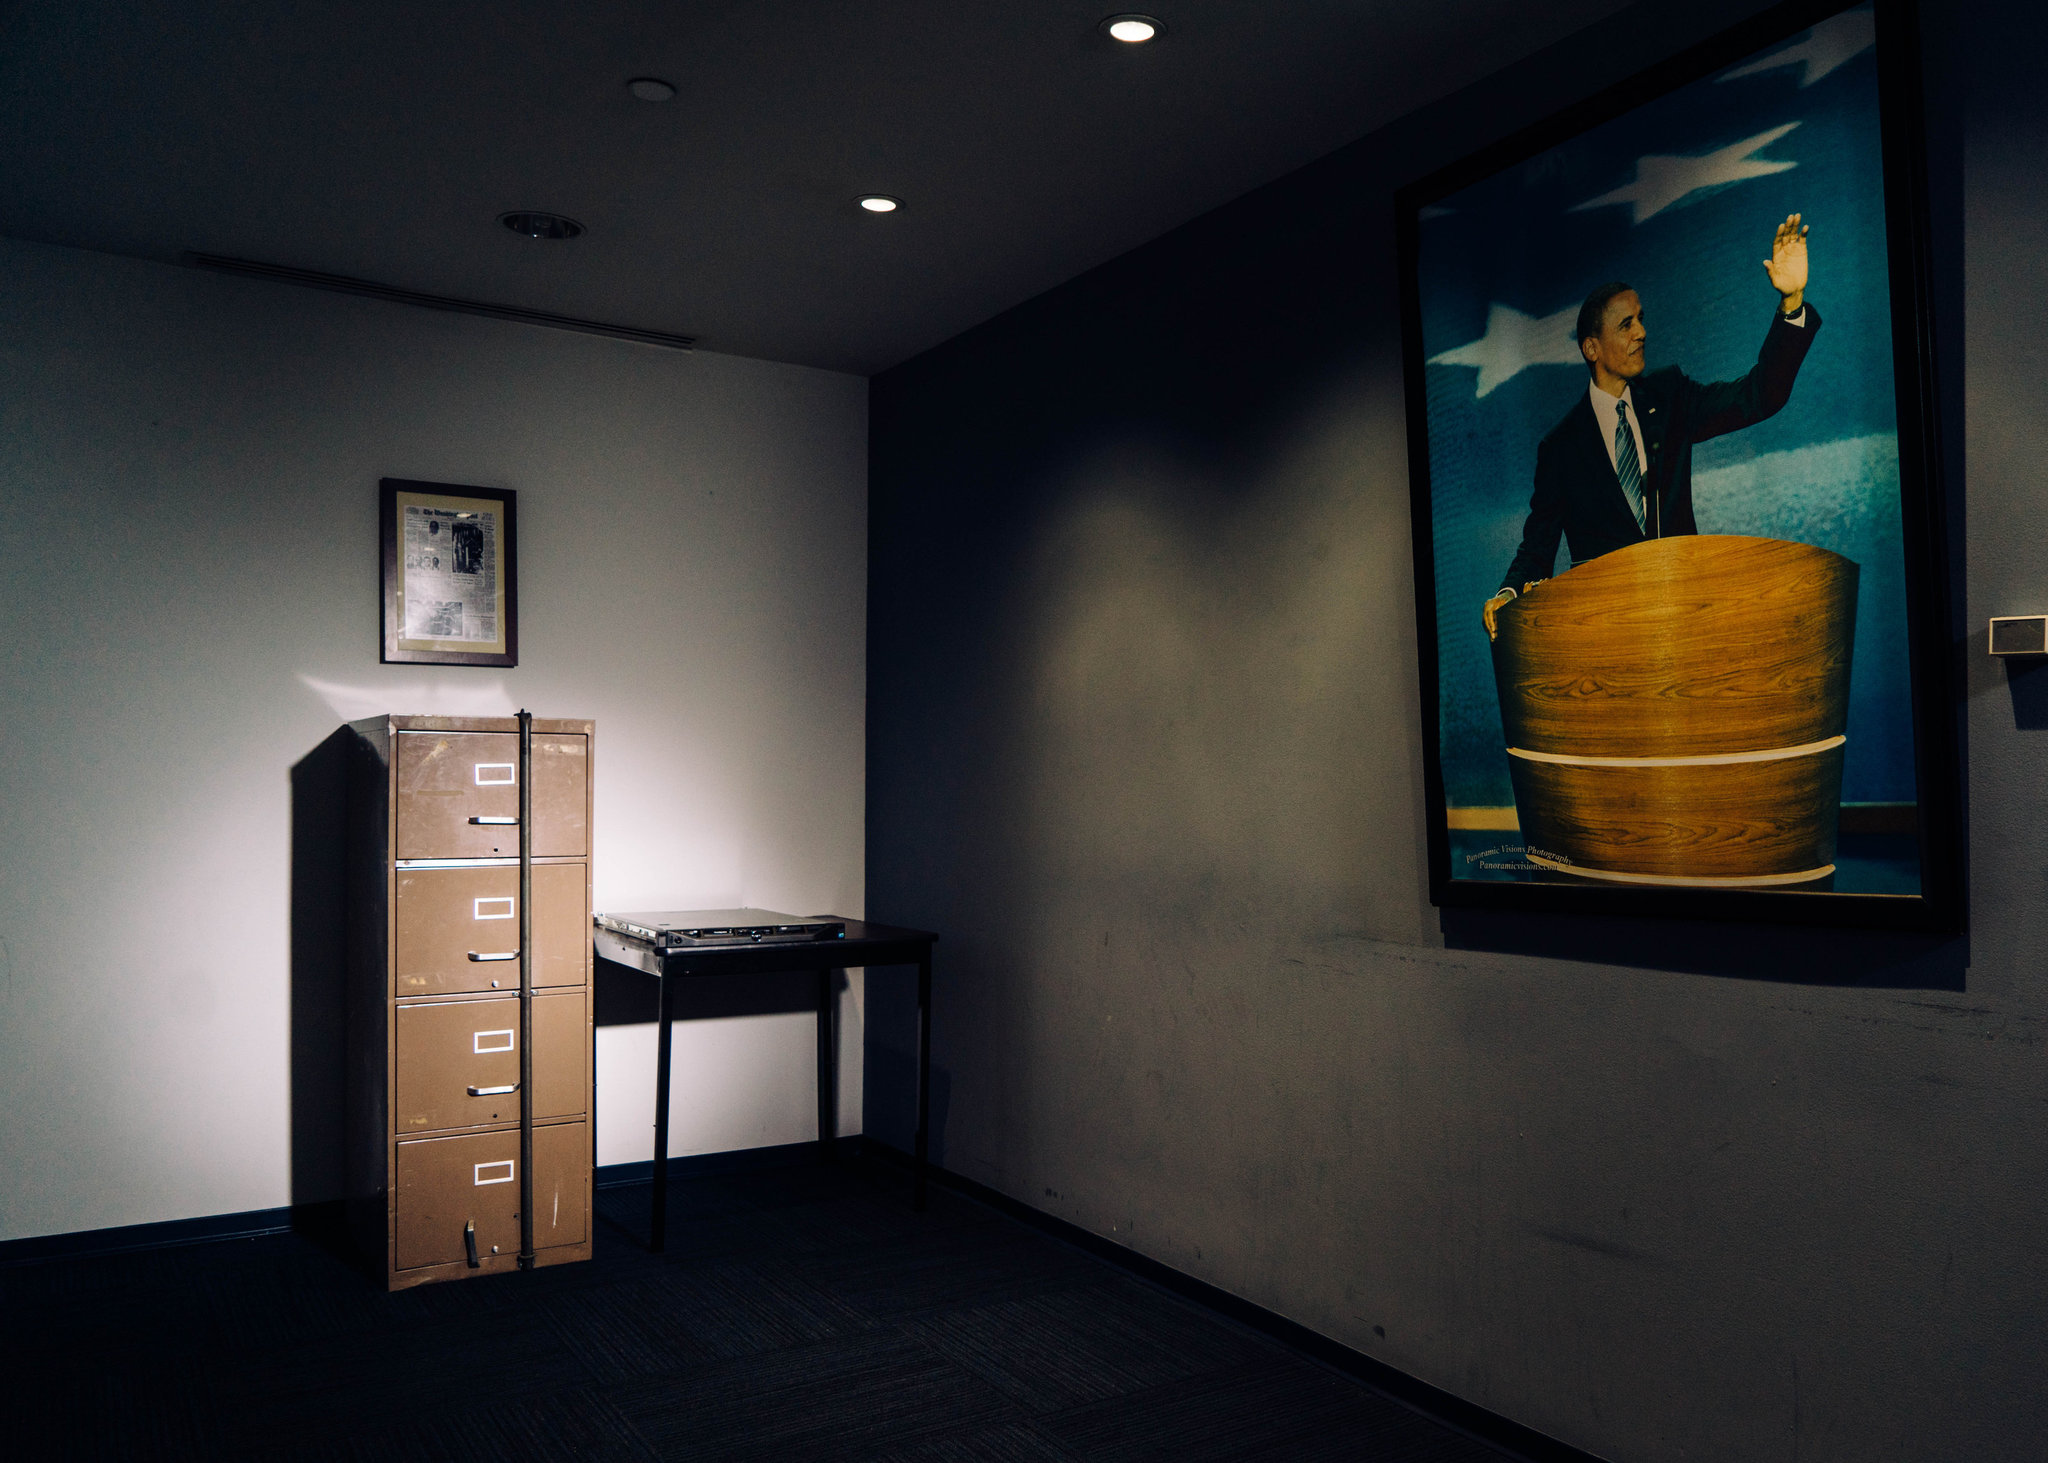 Cabinet From Watergate Break-In of 1972 Next to Democratic National Committee's Hacked Email Server From 2016, Justin Gellerson, New York Times